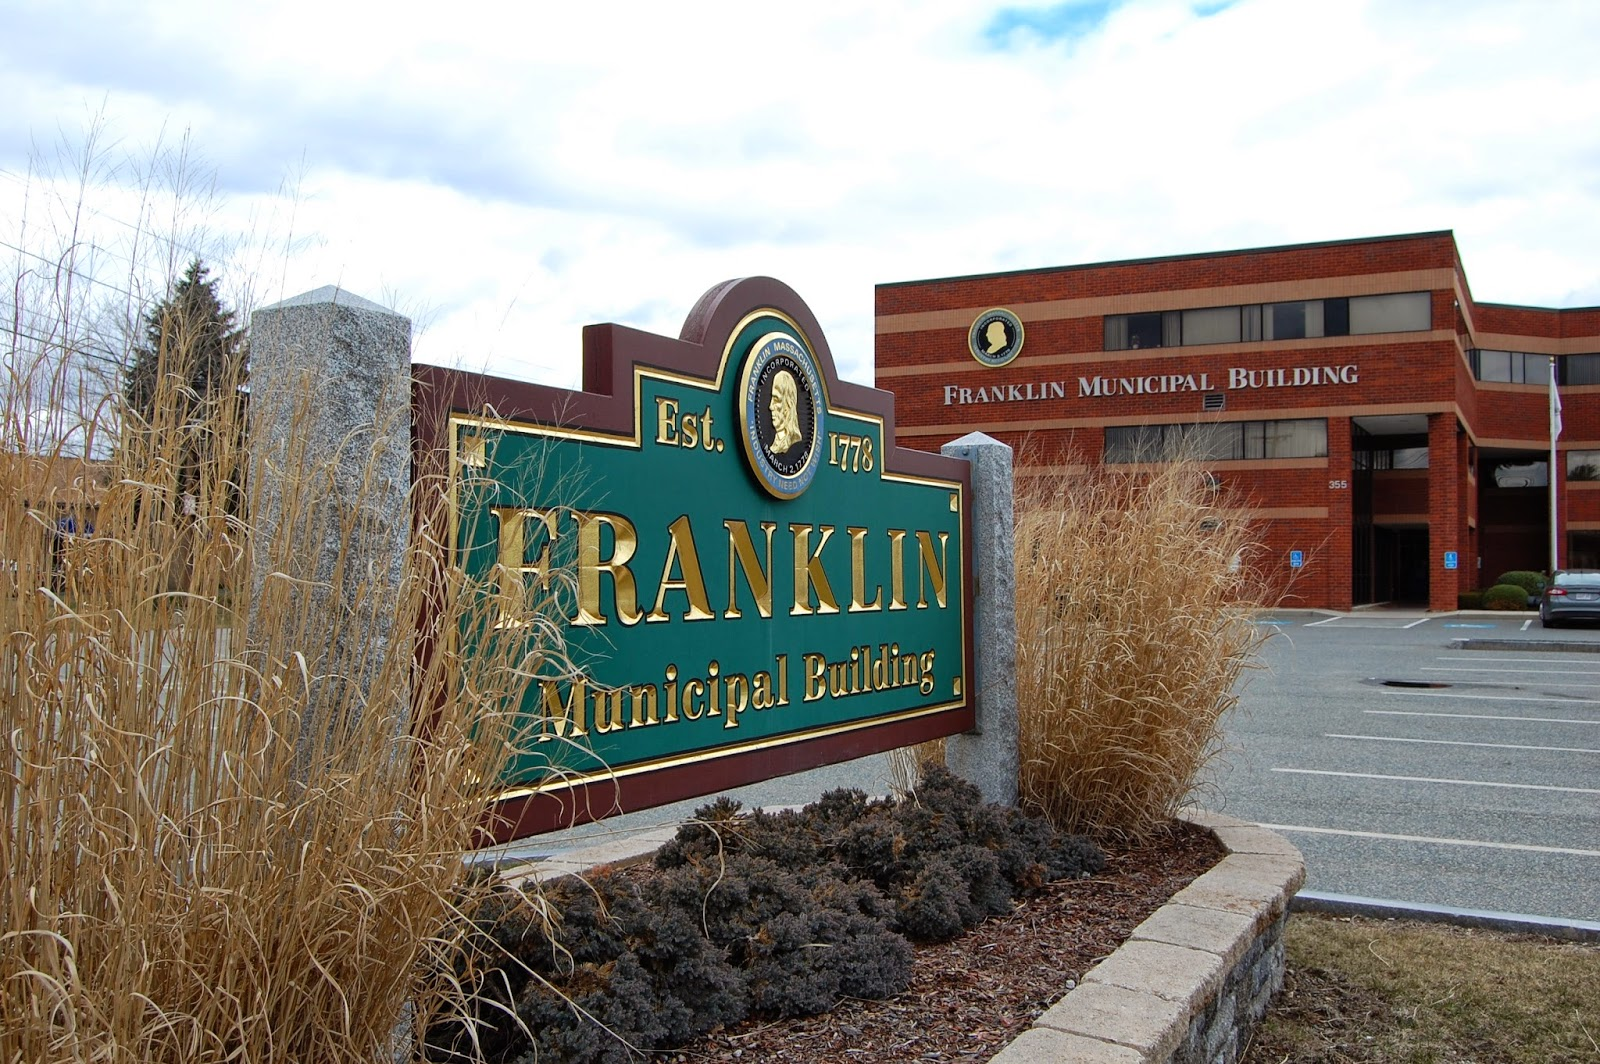 Franklin Municipal Building - the setting for the Town Council meetings